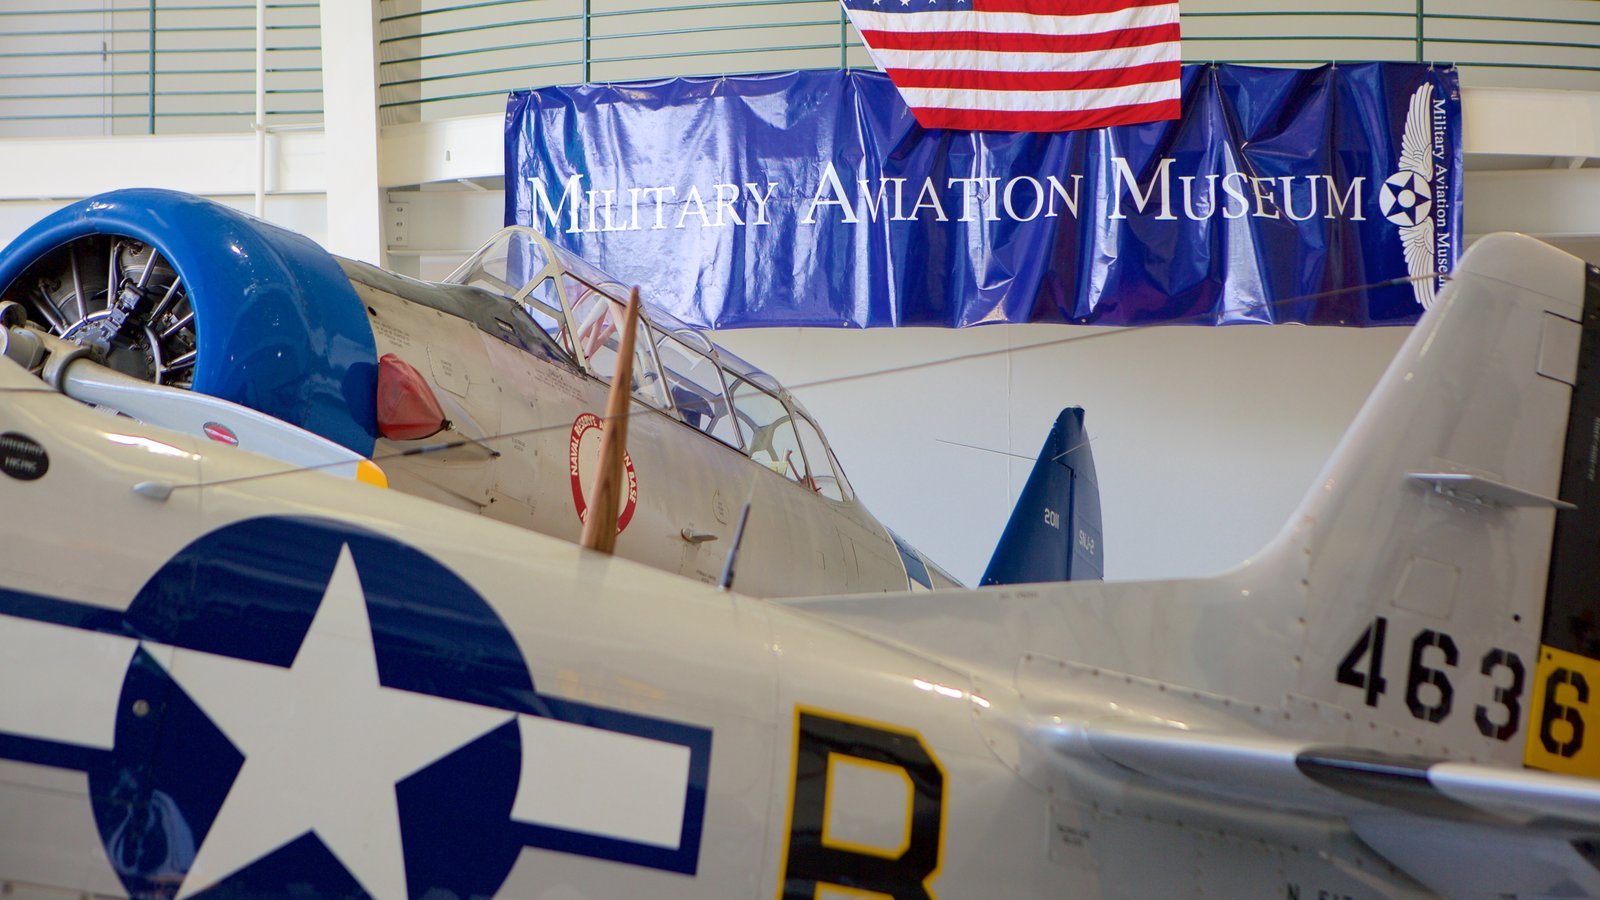 Military Aviation Museum showing signage and aircraft